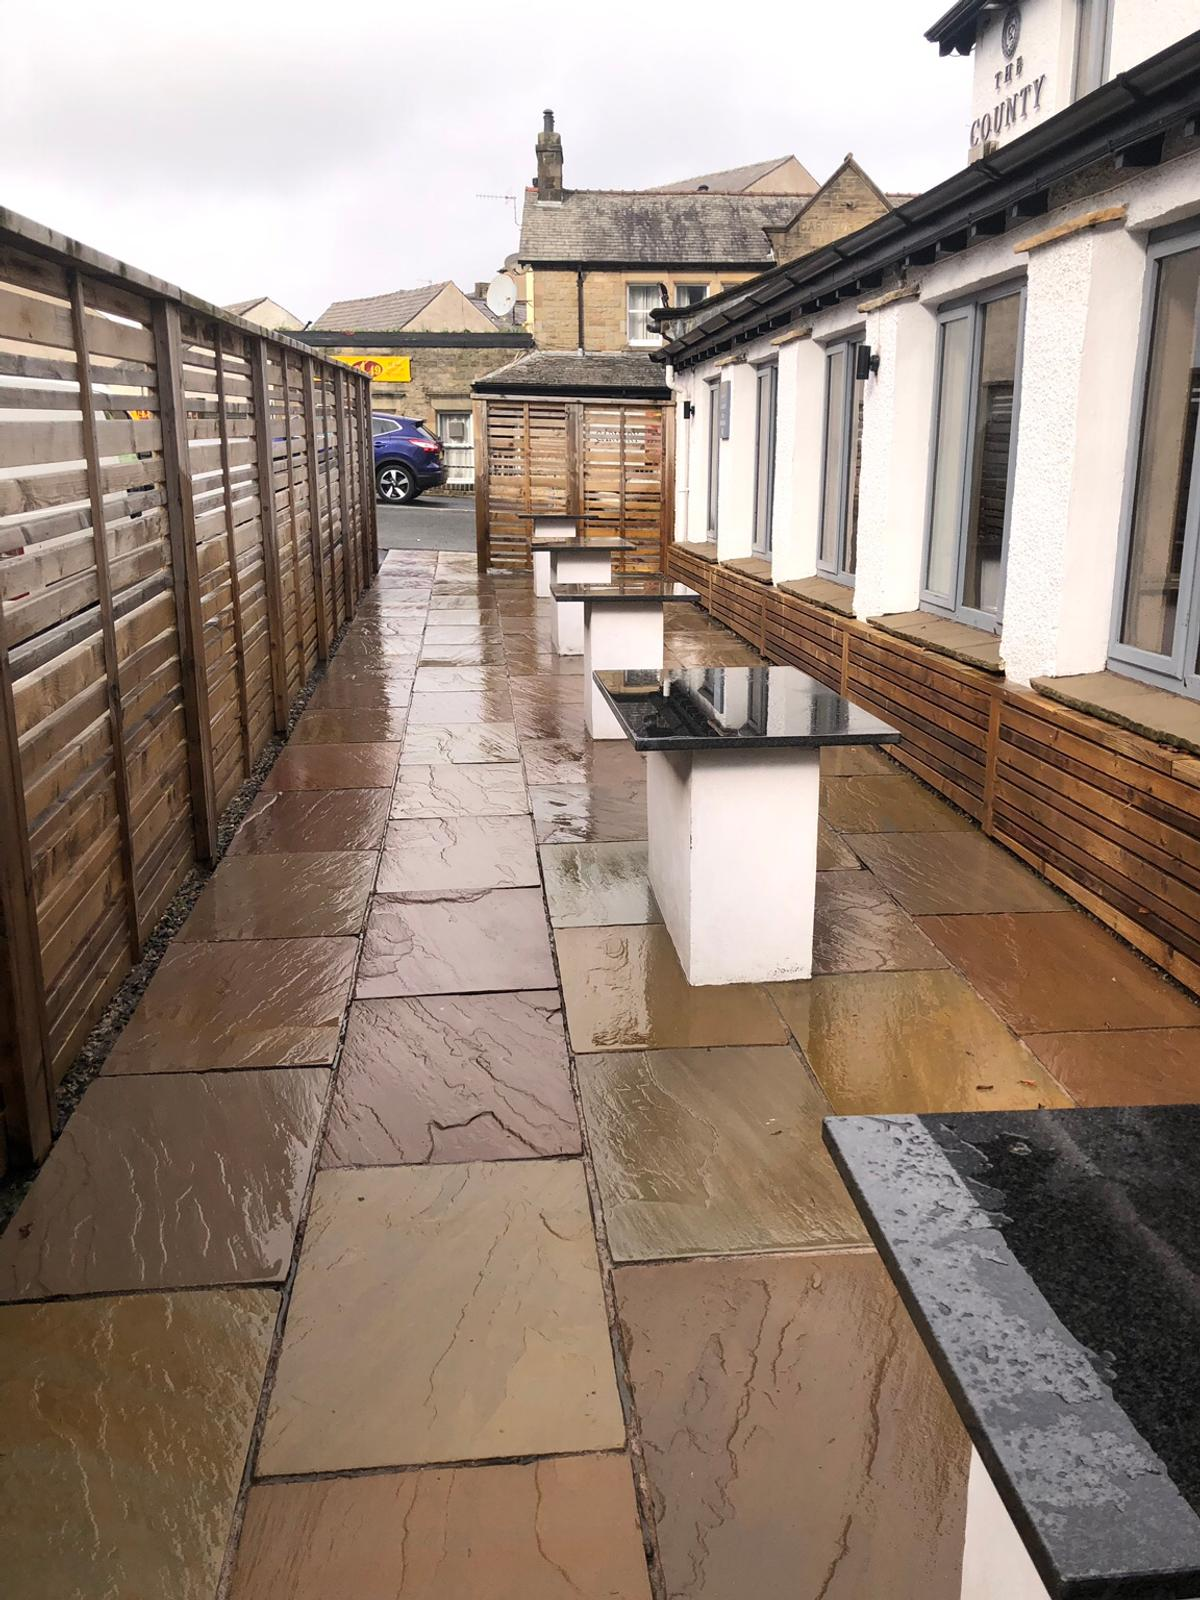 Local friendly reliable service covering the North Lancs , South Cumbria , North Yorkshire Areas for more information and to see previous work undertaken visit our Facebook page Ezi Jet Power Washing Services or give us a call on 07583 567253